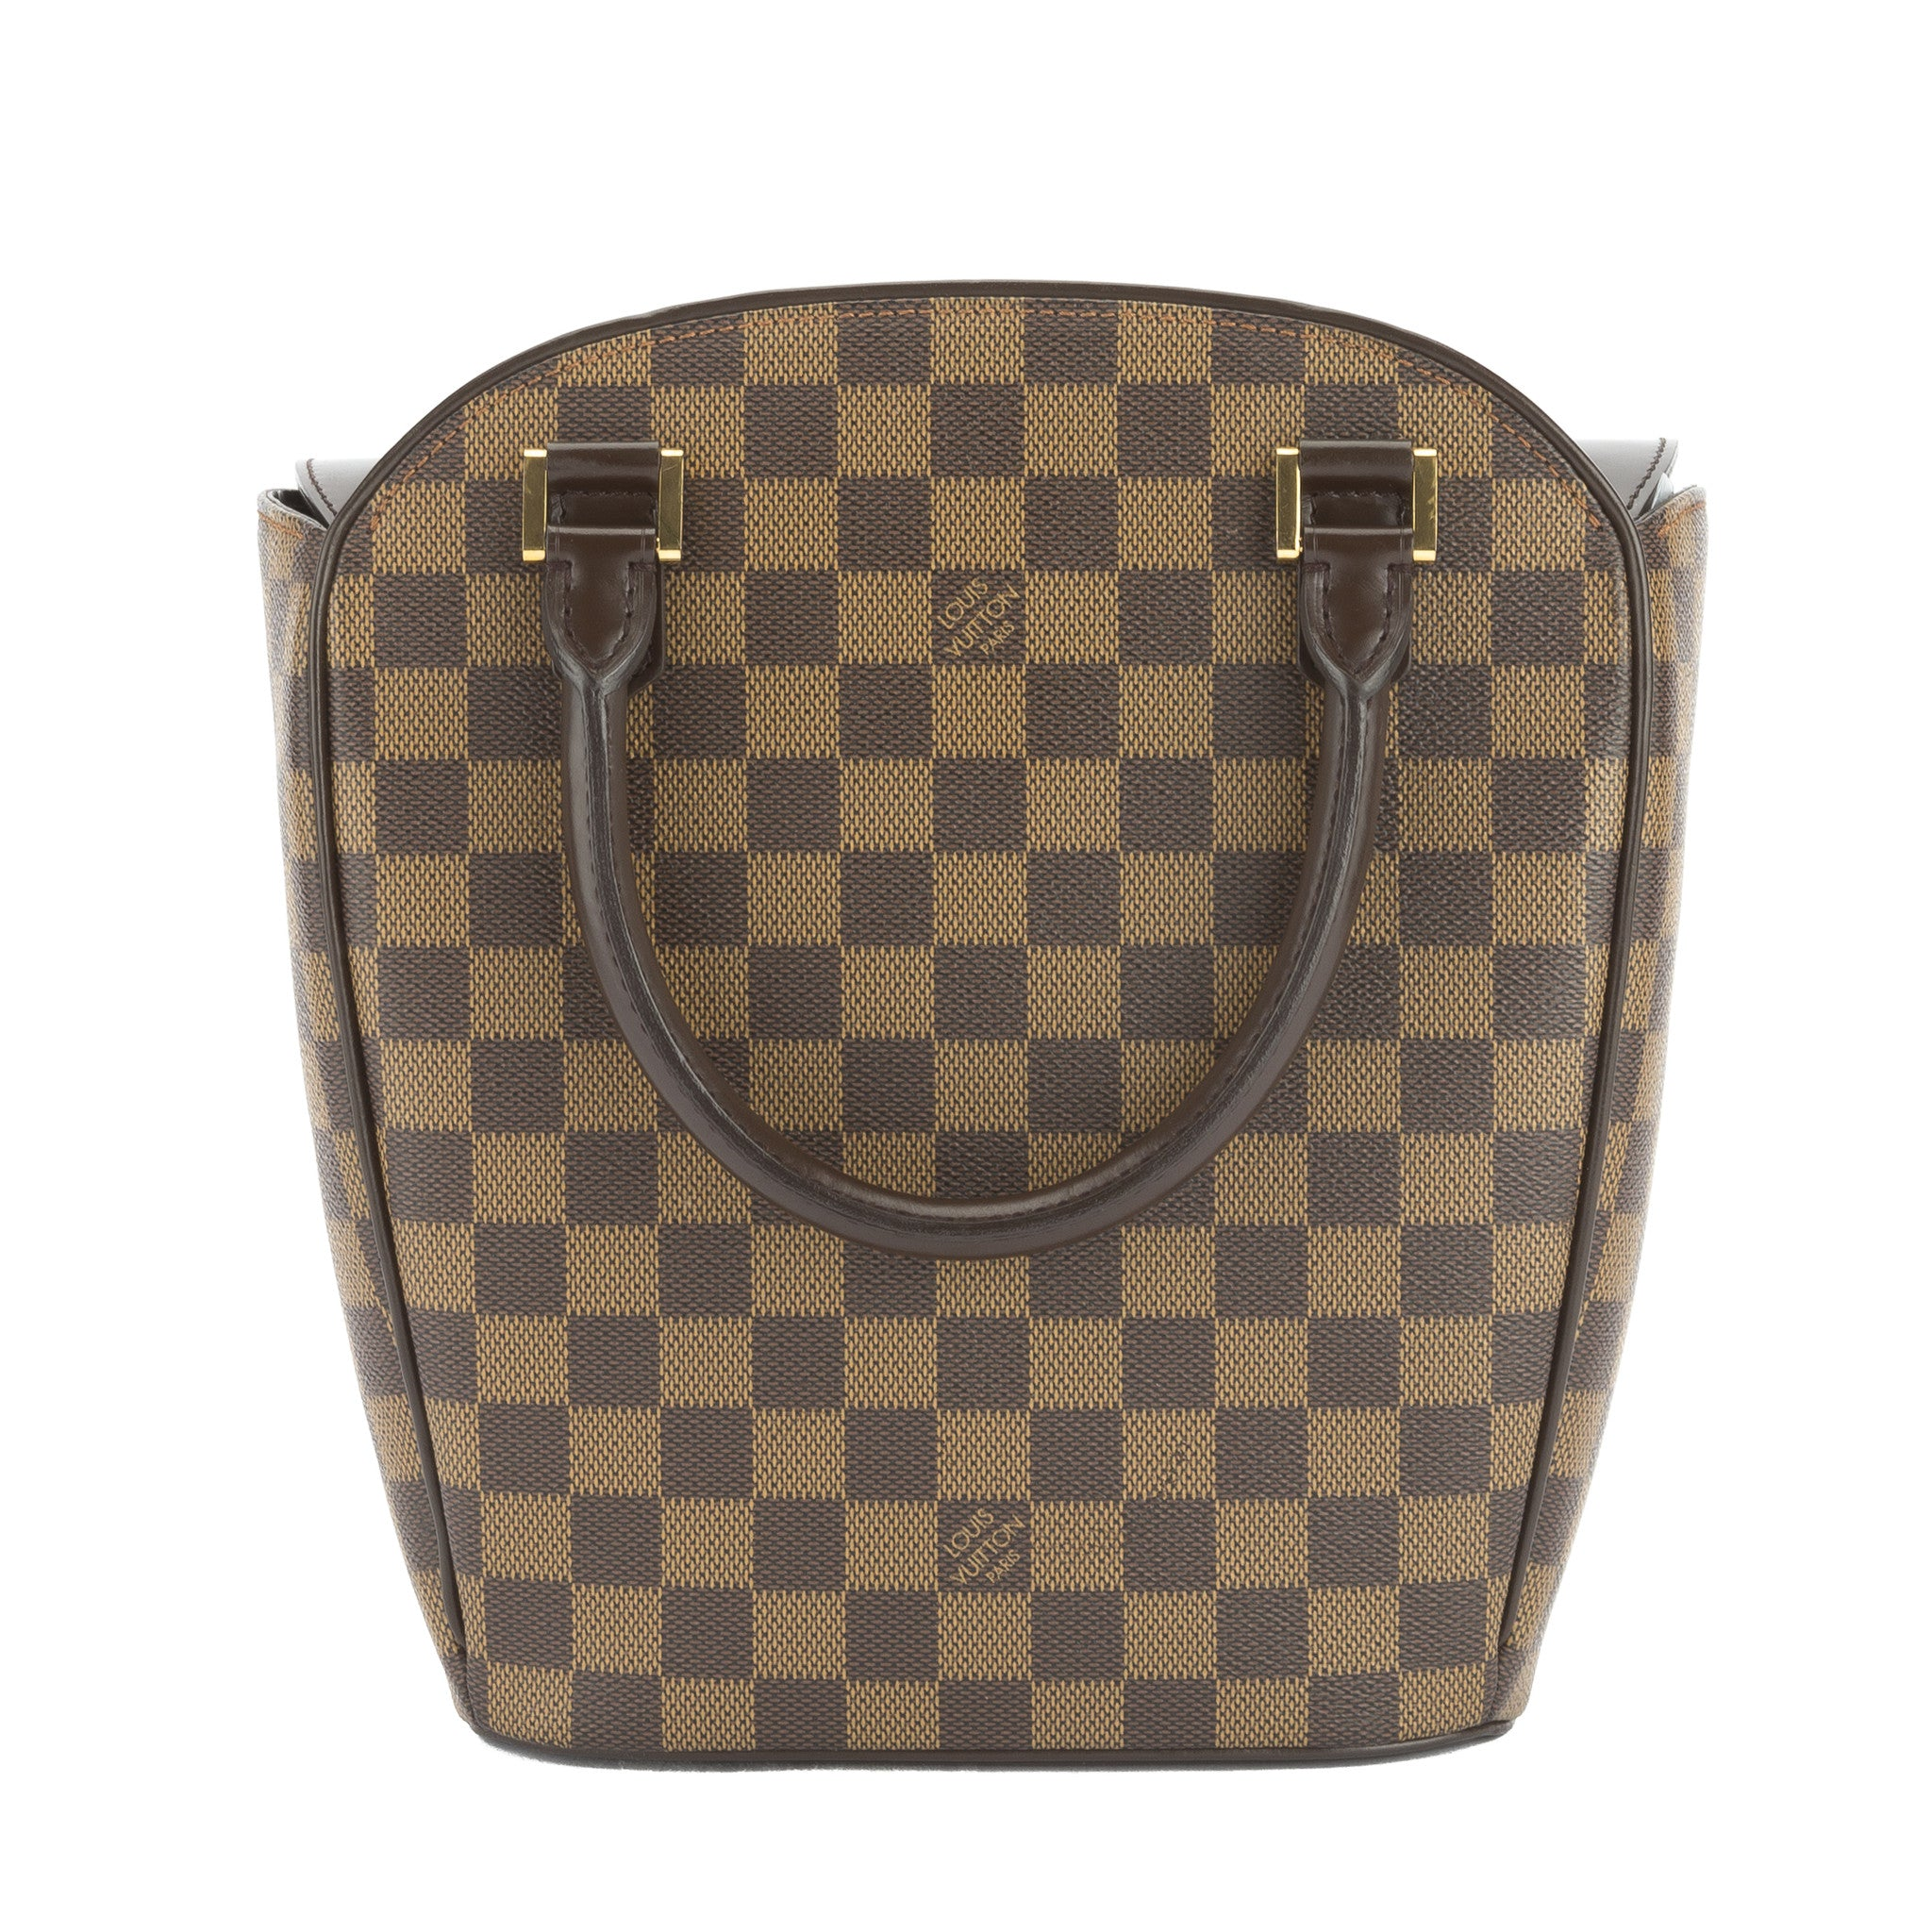 600e27b19f02 Louis Vuitton Damier Ebene Sarria Seau Bag (Pre Owned) - 2857011 ...